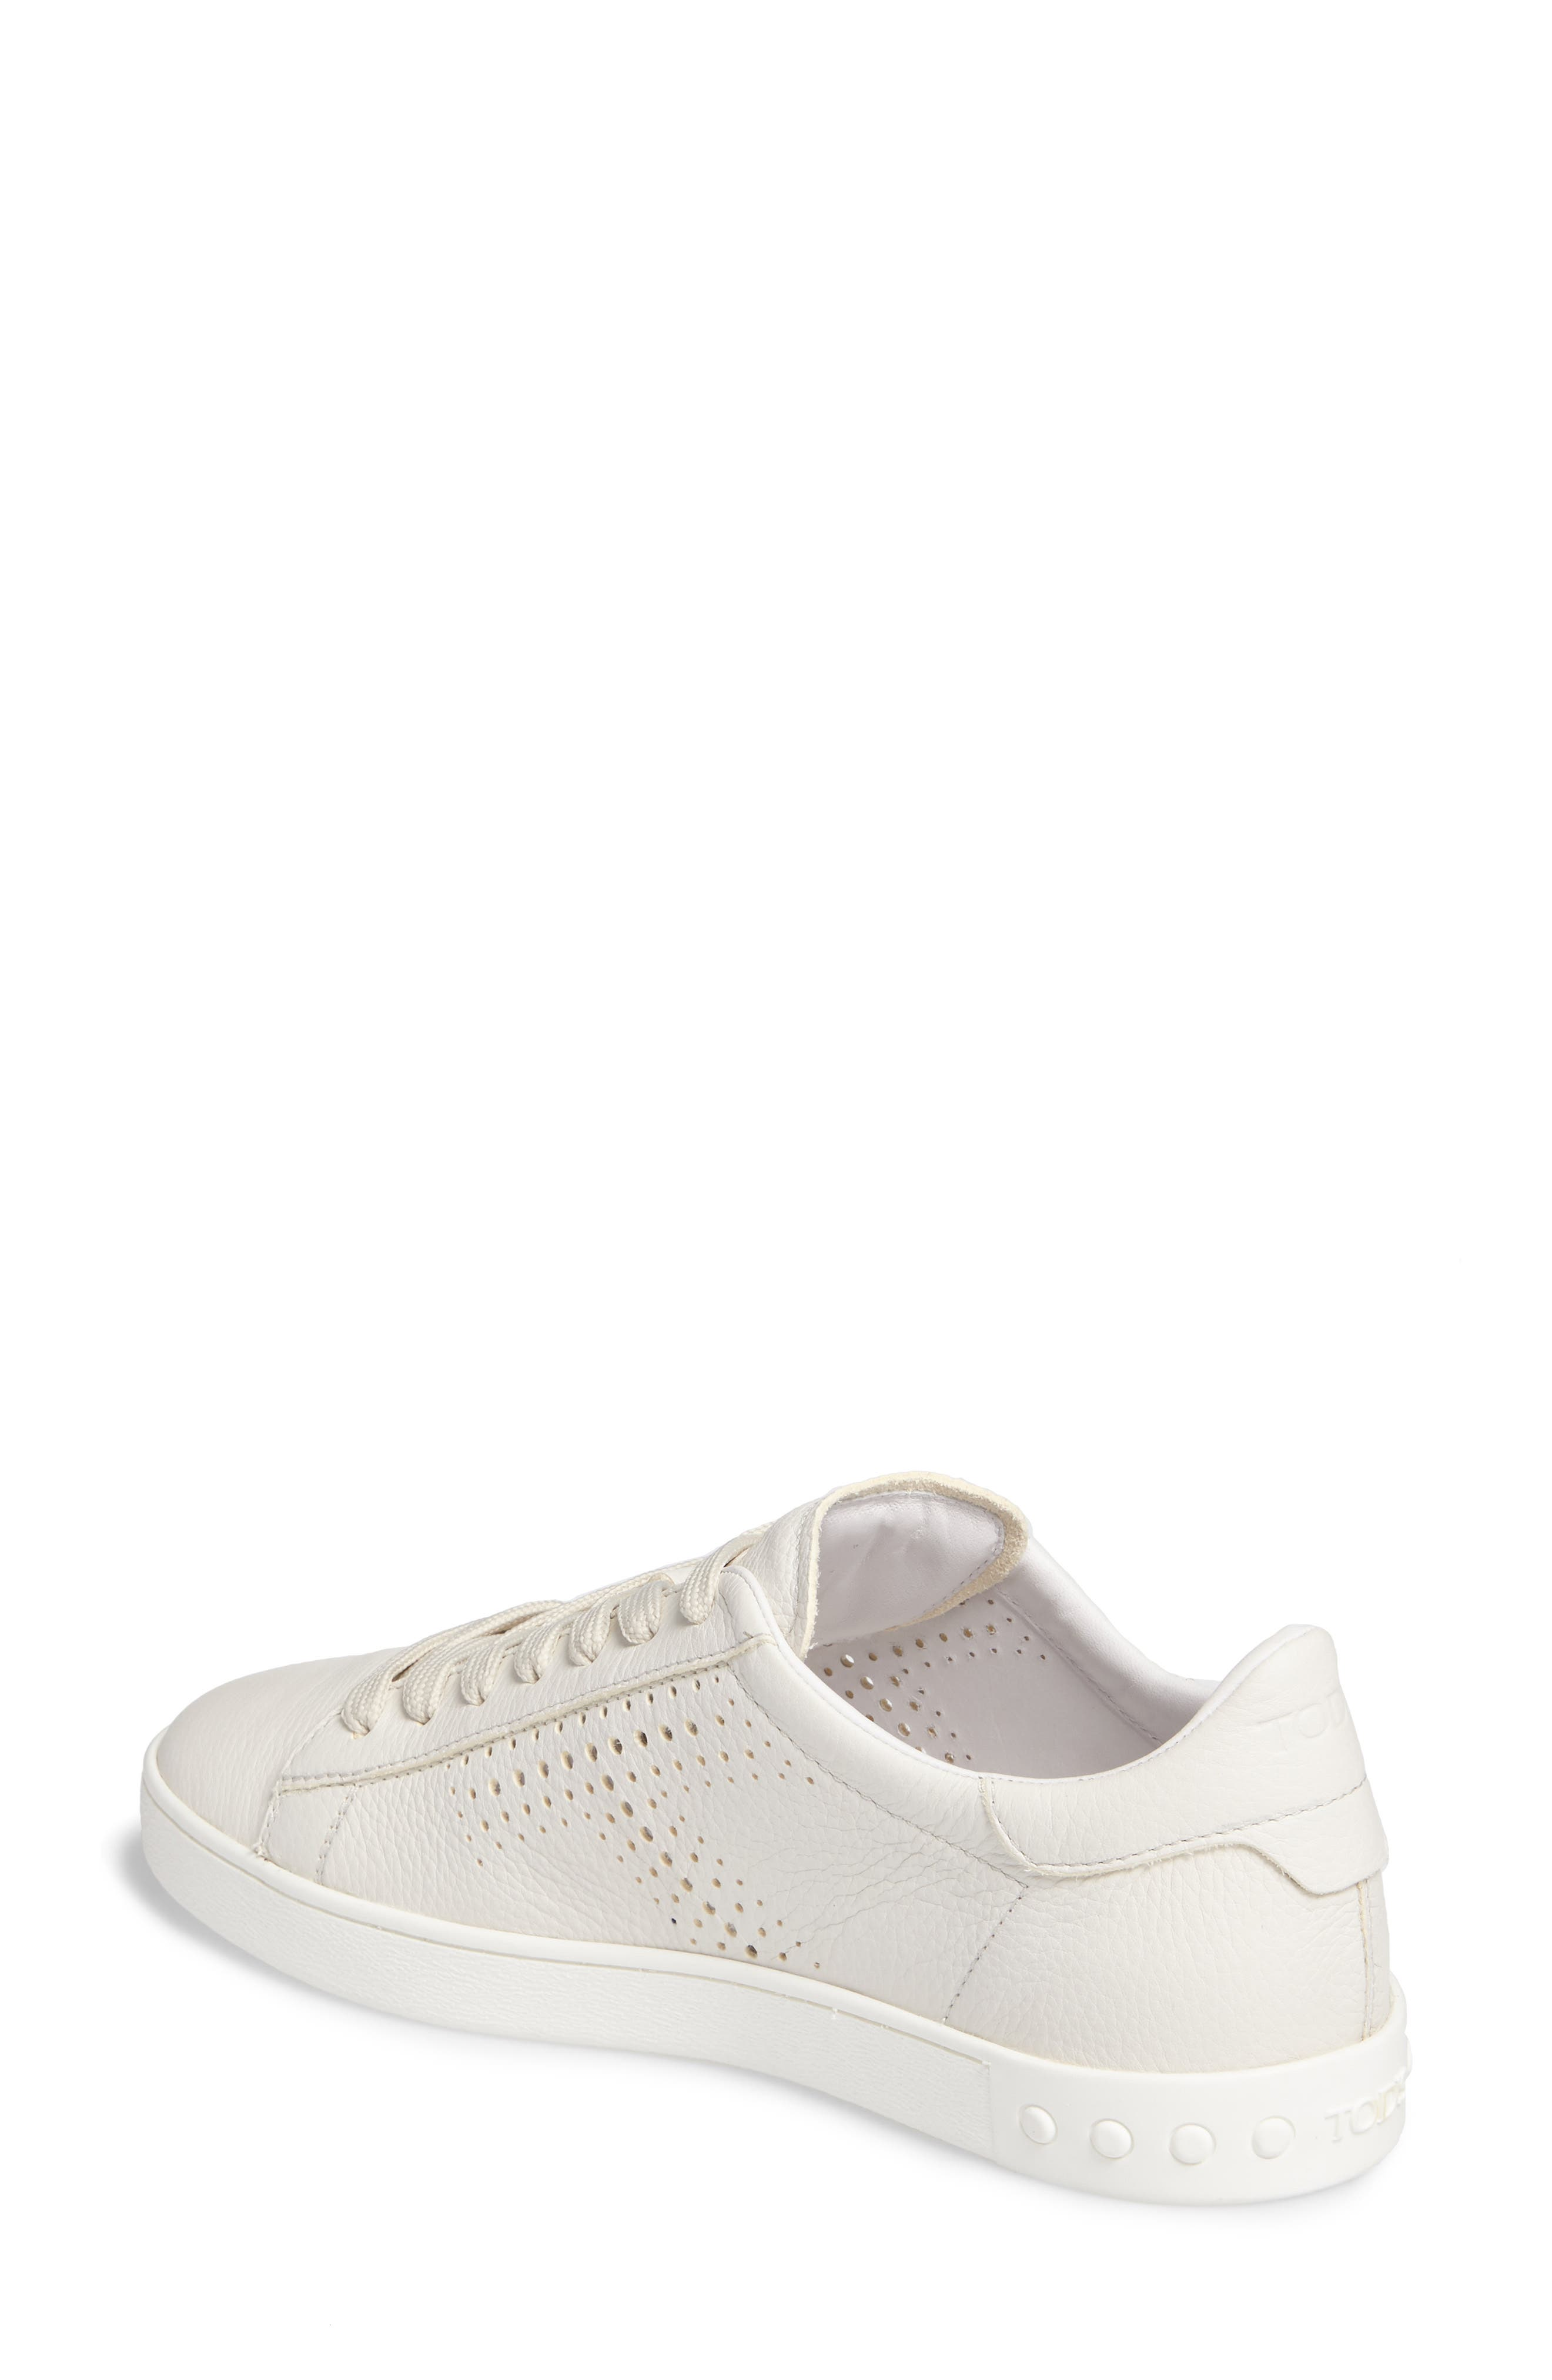 Alternate Image 2  - Tods Perforated T Sneaker (Women)